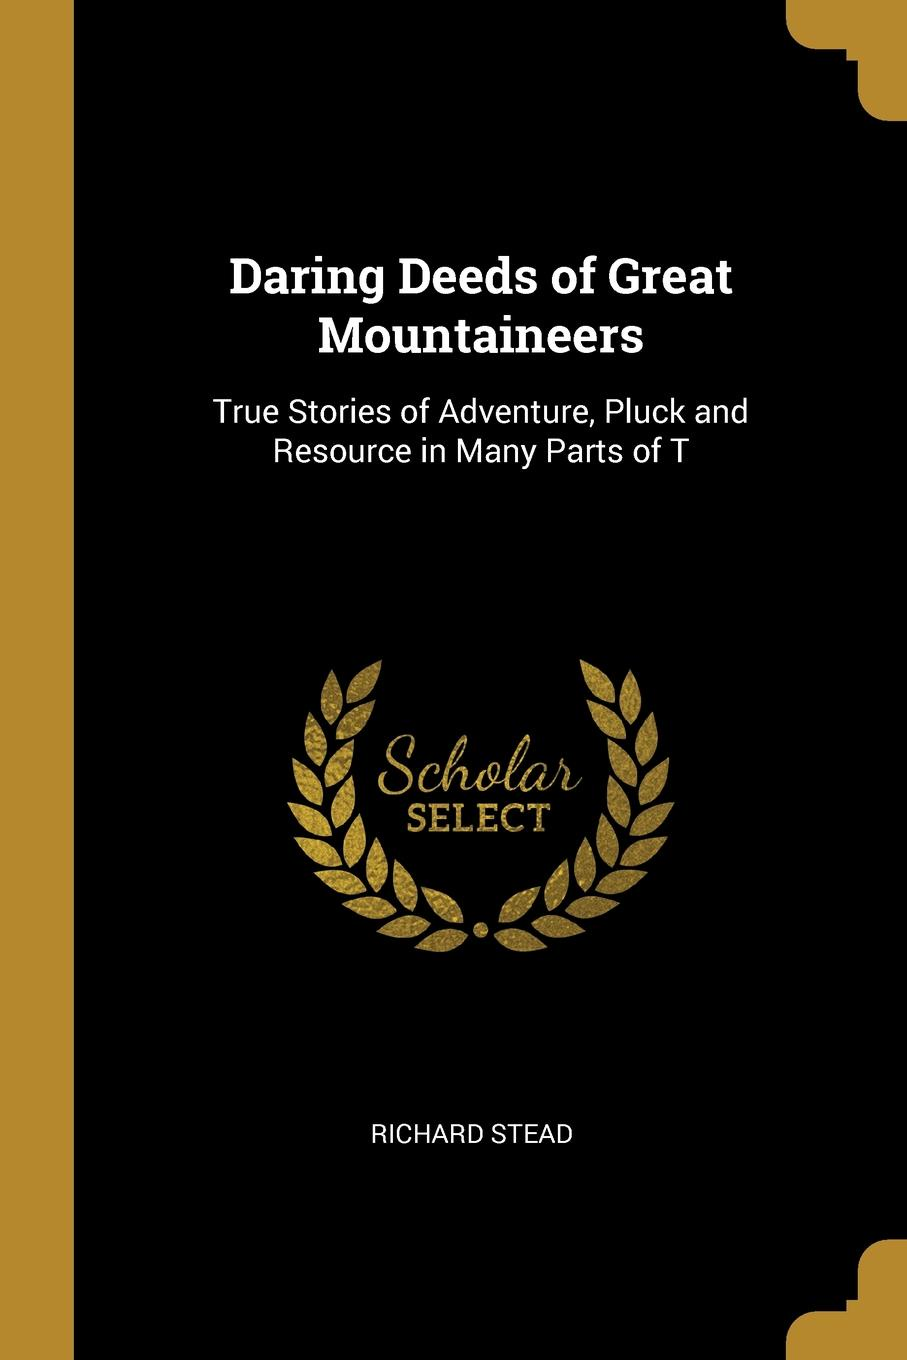 Richard Stead Daring Deeds of Great Mountaineers. True Stories of Adventure, Pluck and Resource in Many Parts of T